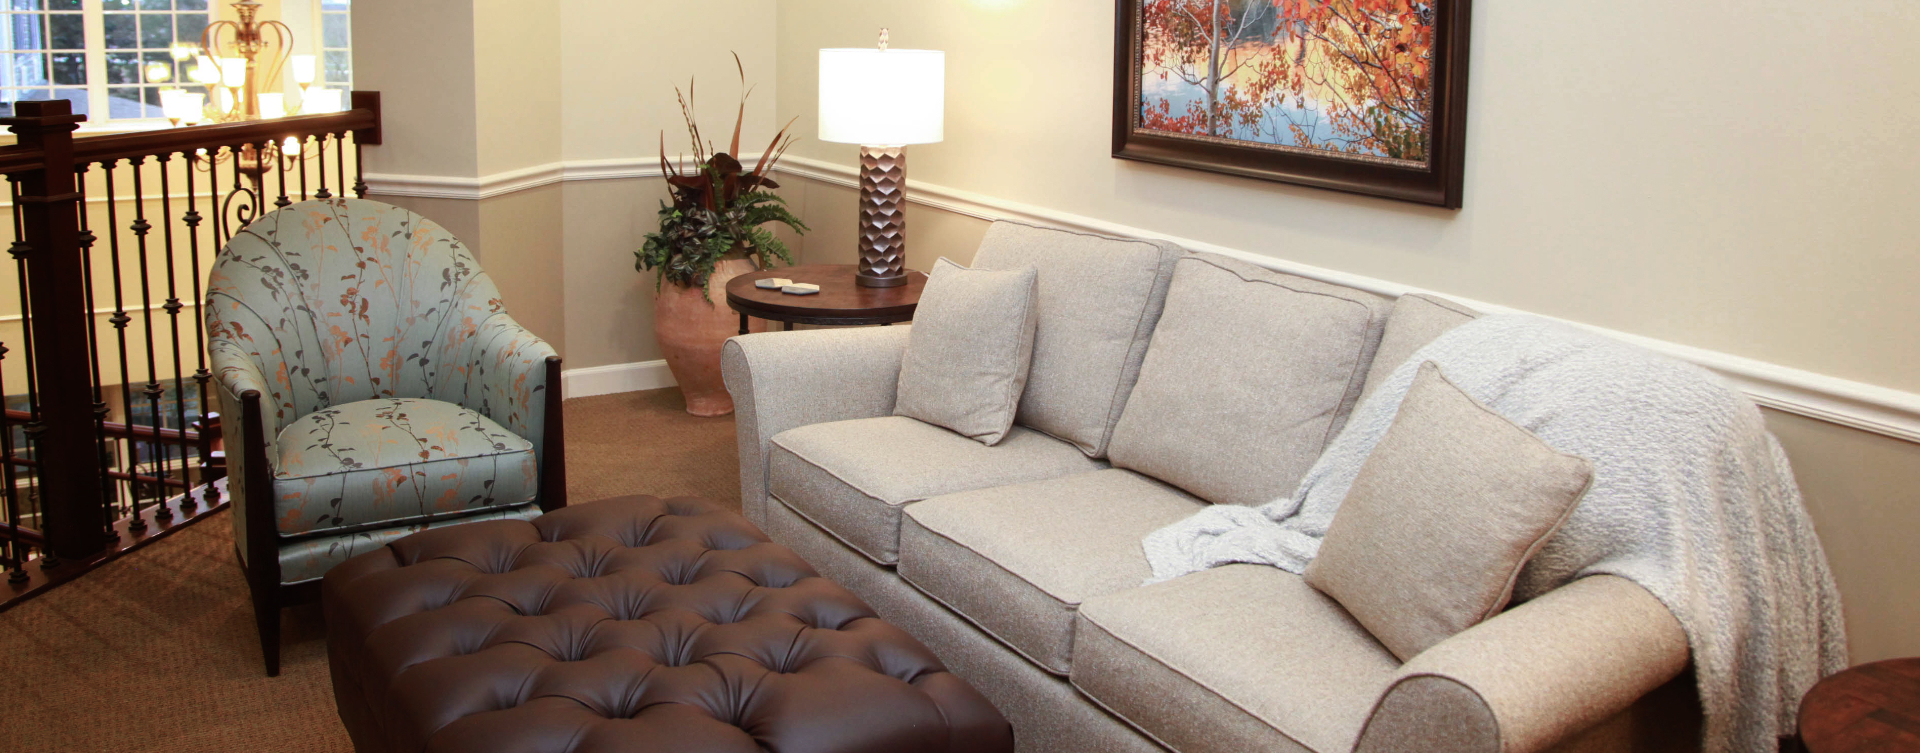 Enjoy a good snooze in the sitting area at Bickford of St. Charles